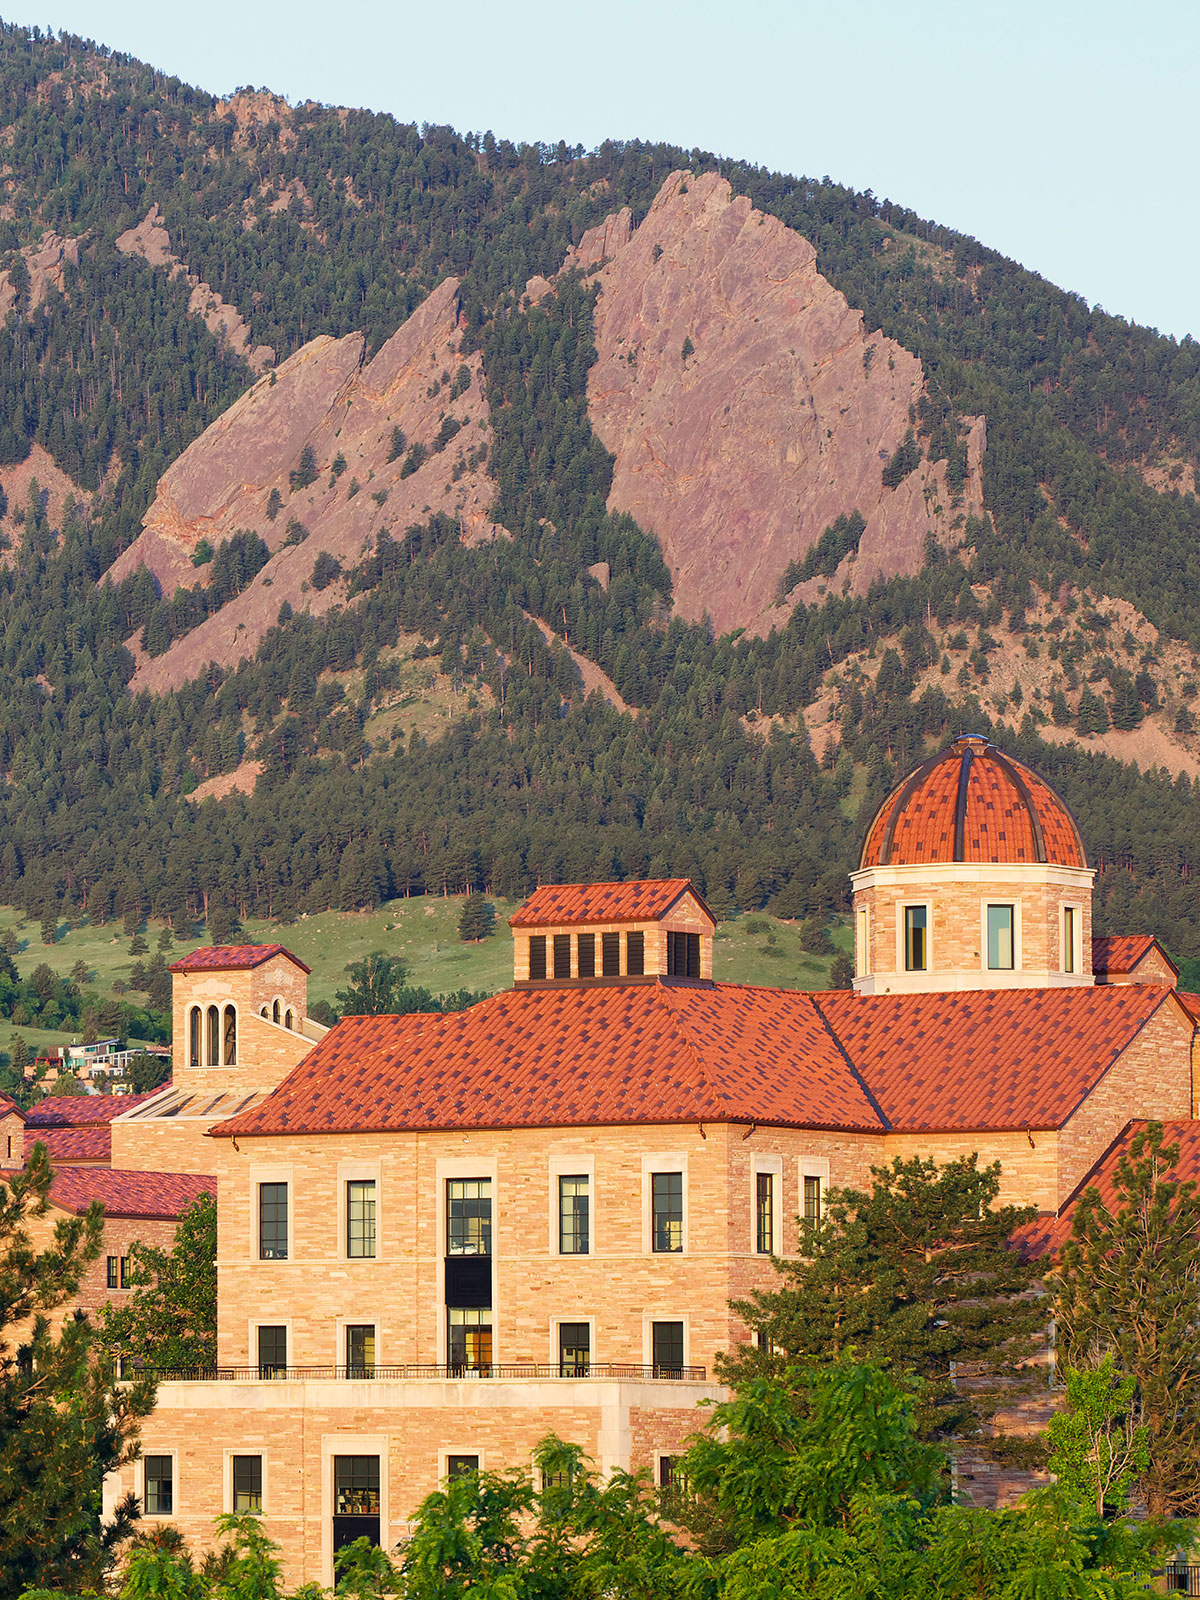 University of Colorado campus building with flatirons in background